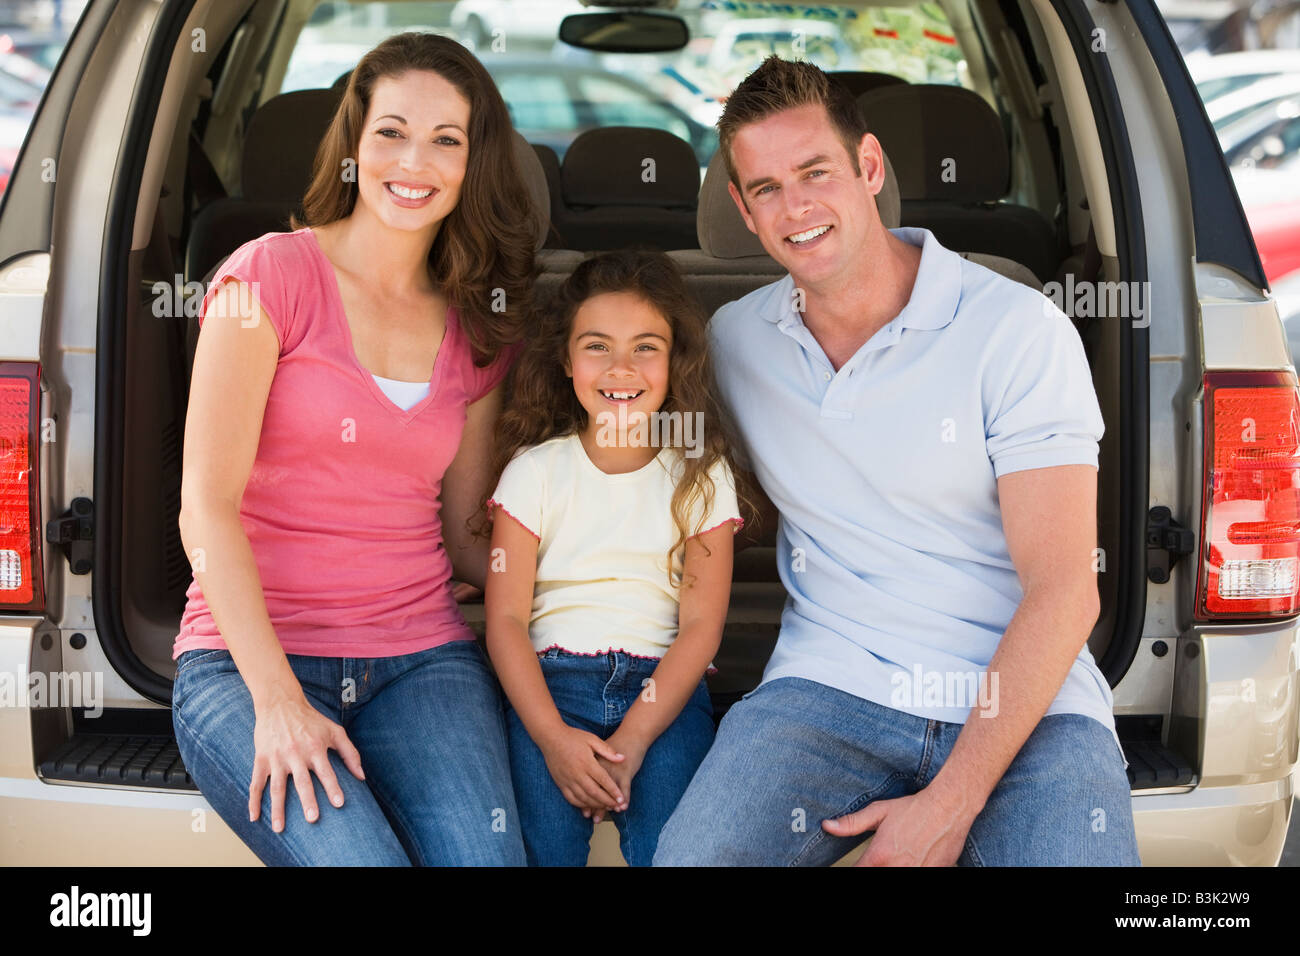 Family sitting in back of van smiling - Stock Image